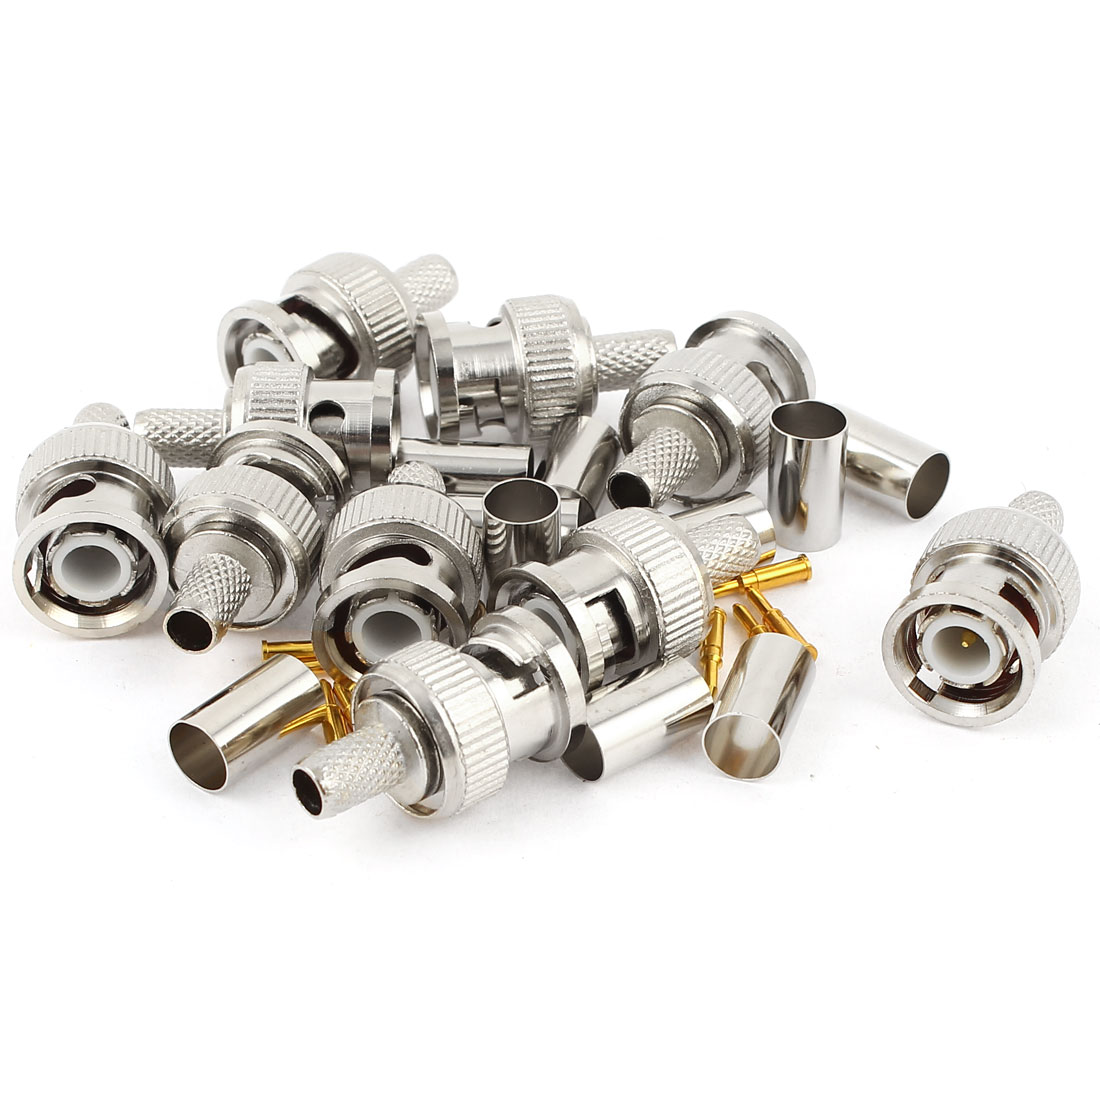 10 Pcs BNC Male RG59 Coaxial Crimp Connector Adapter Set for CCTV camera